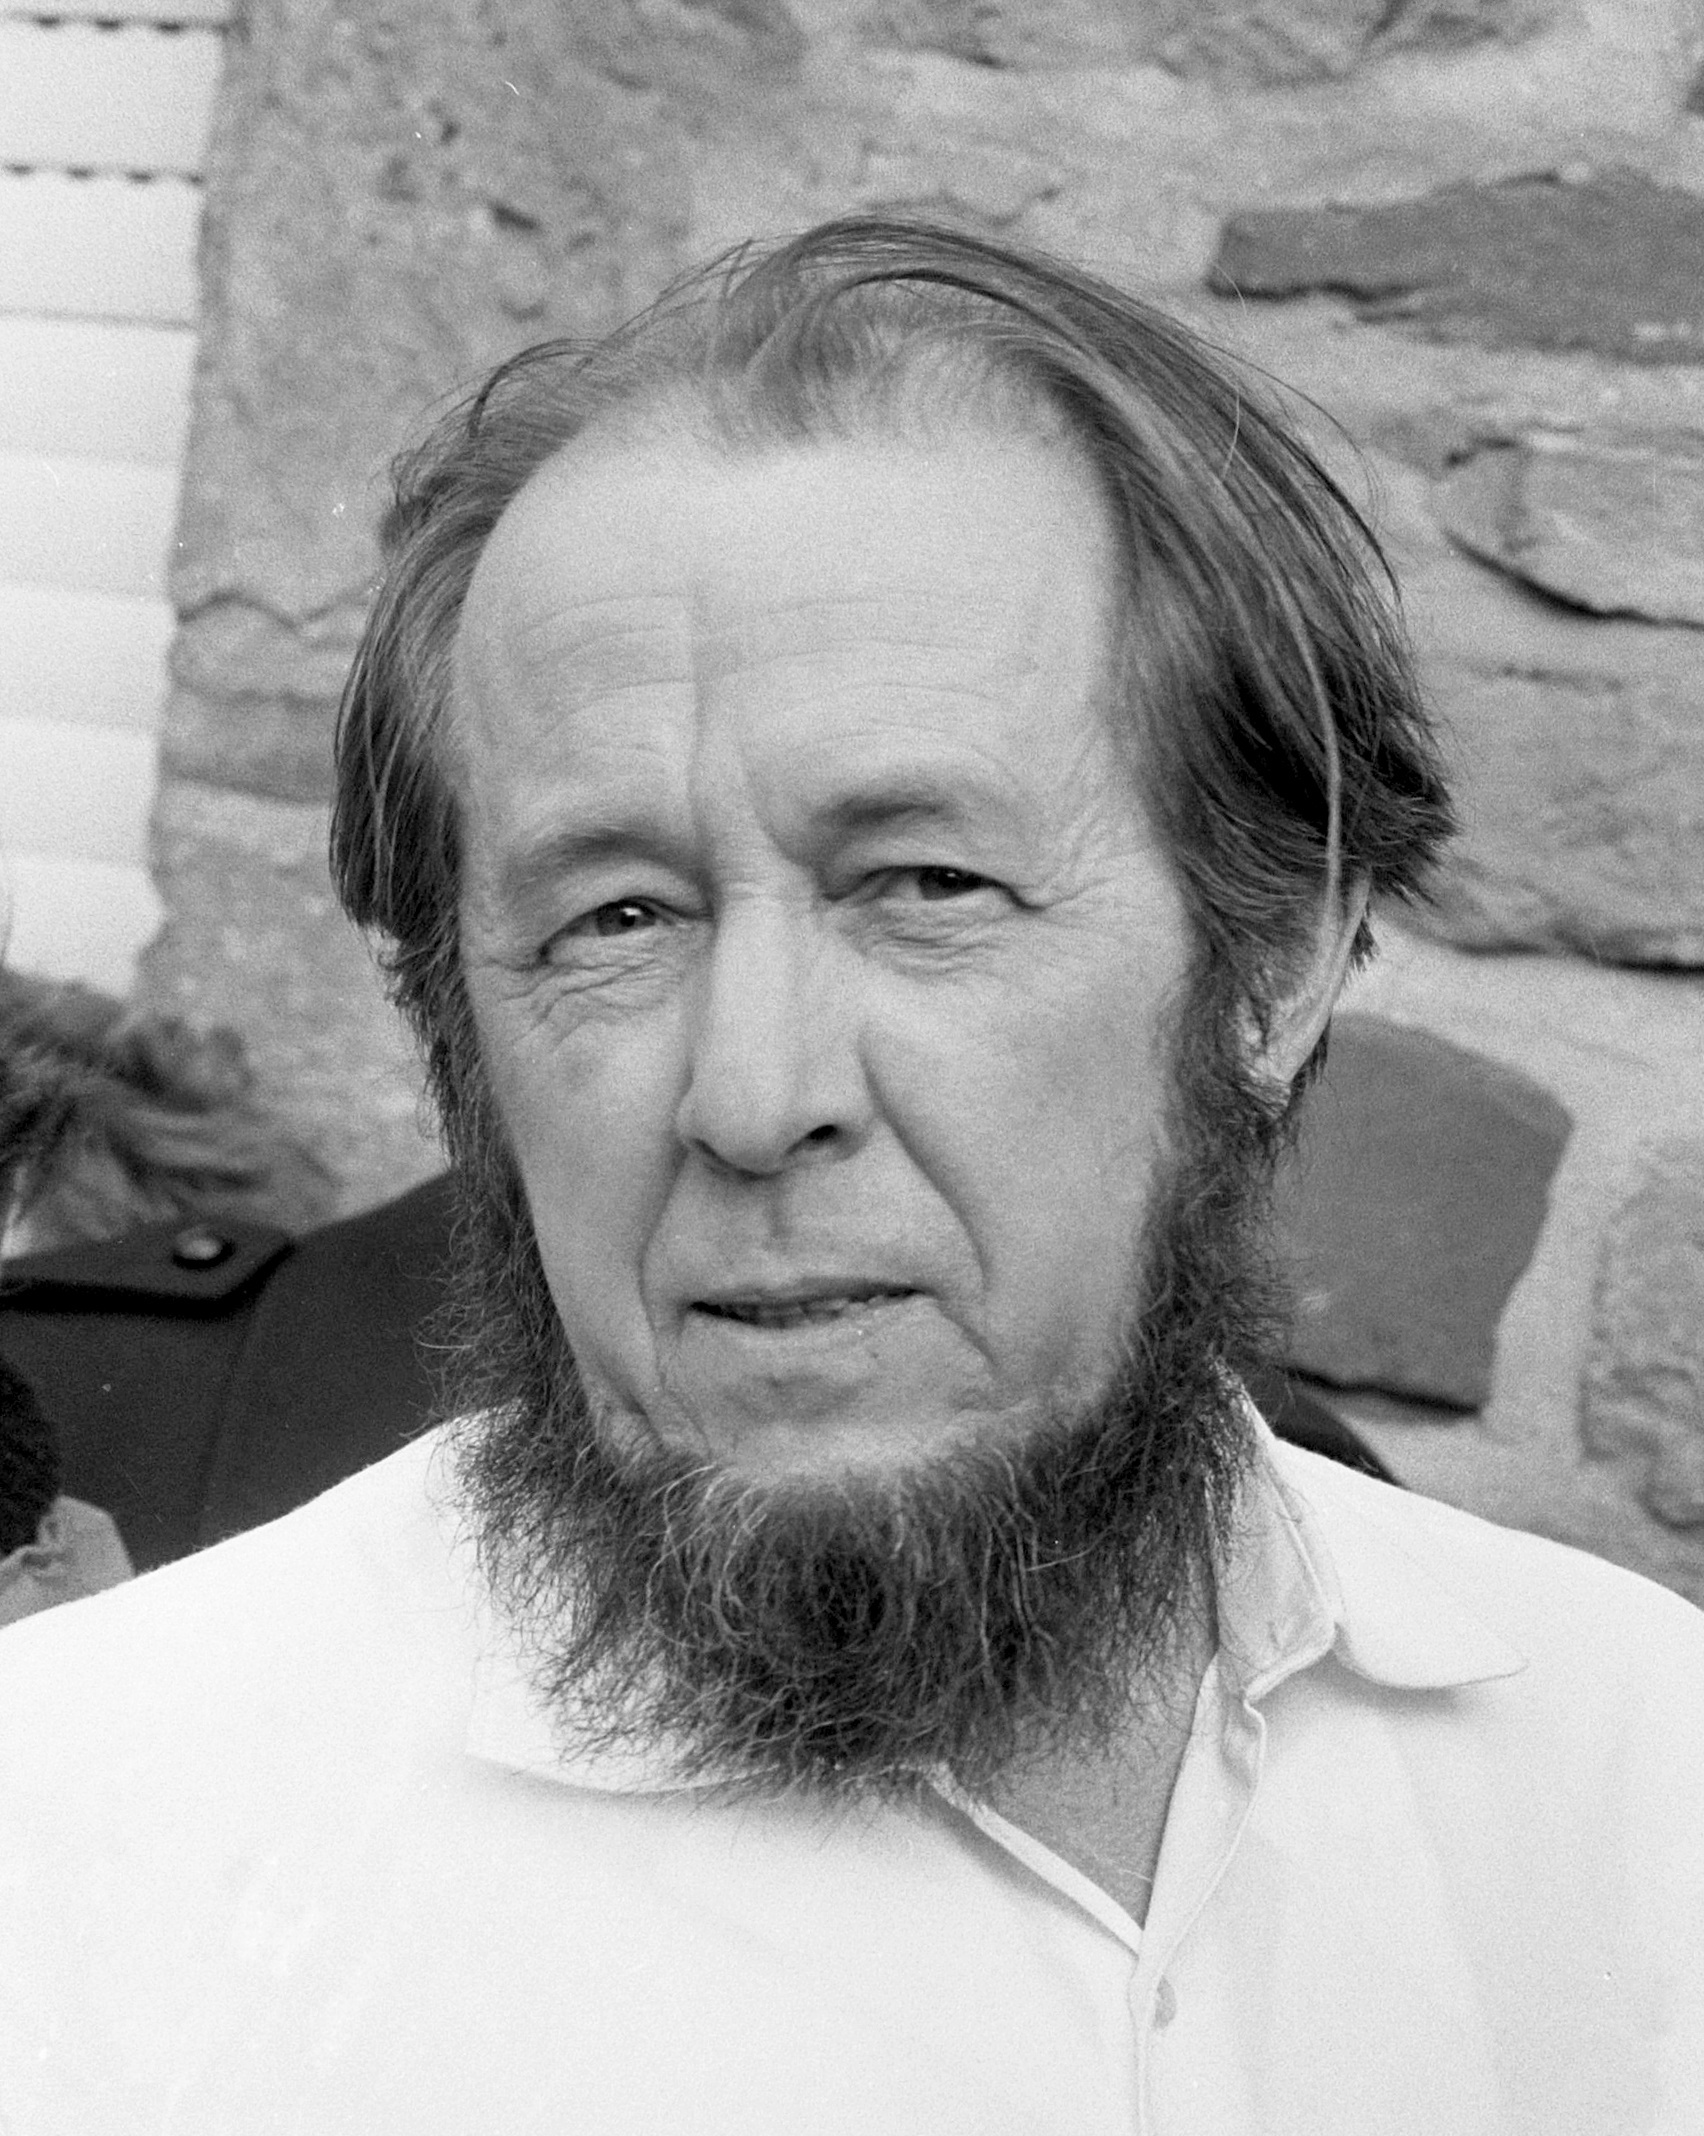 http://upload.wikimedia.org/wikipedia/commons/8/8d/Aleksandr_Solzhenitsyn_1974crop.jpg